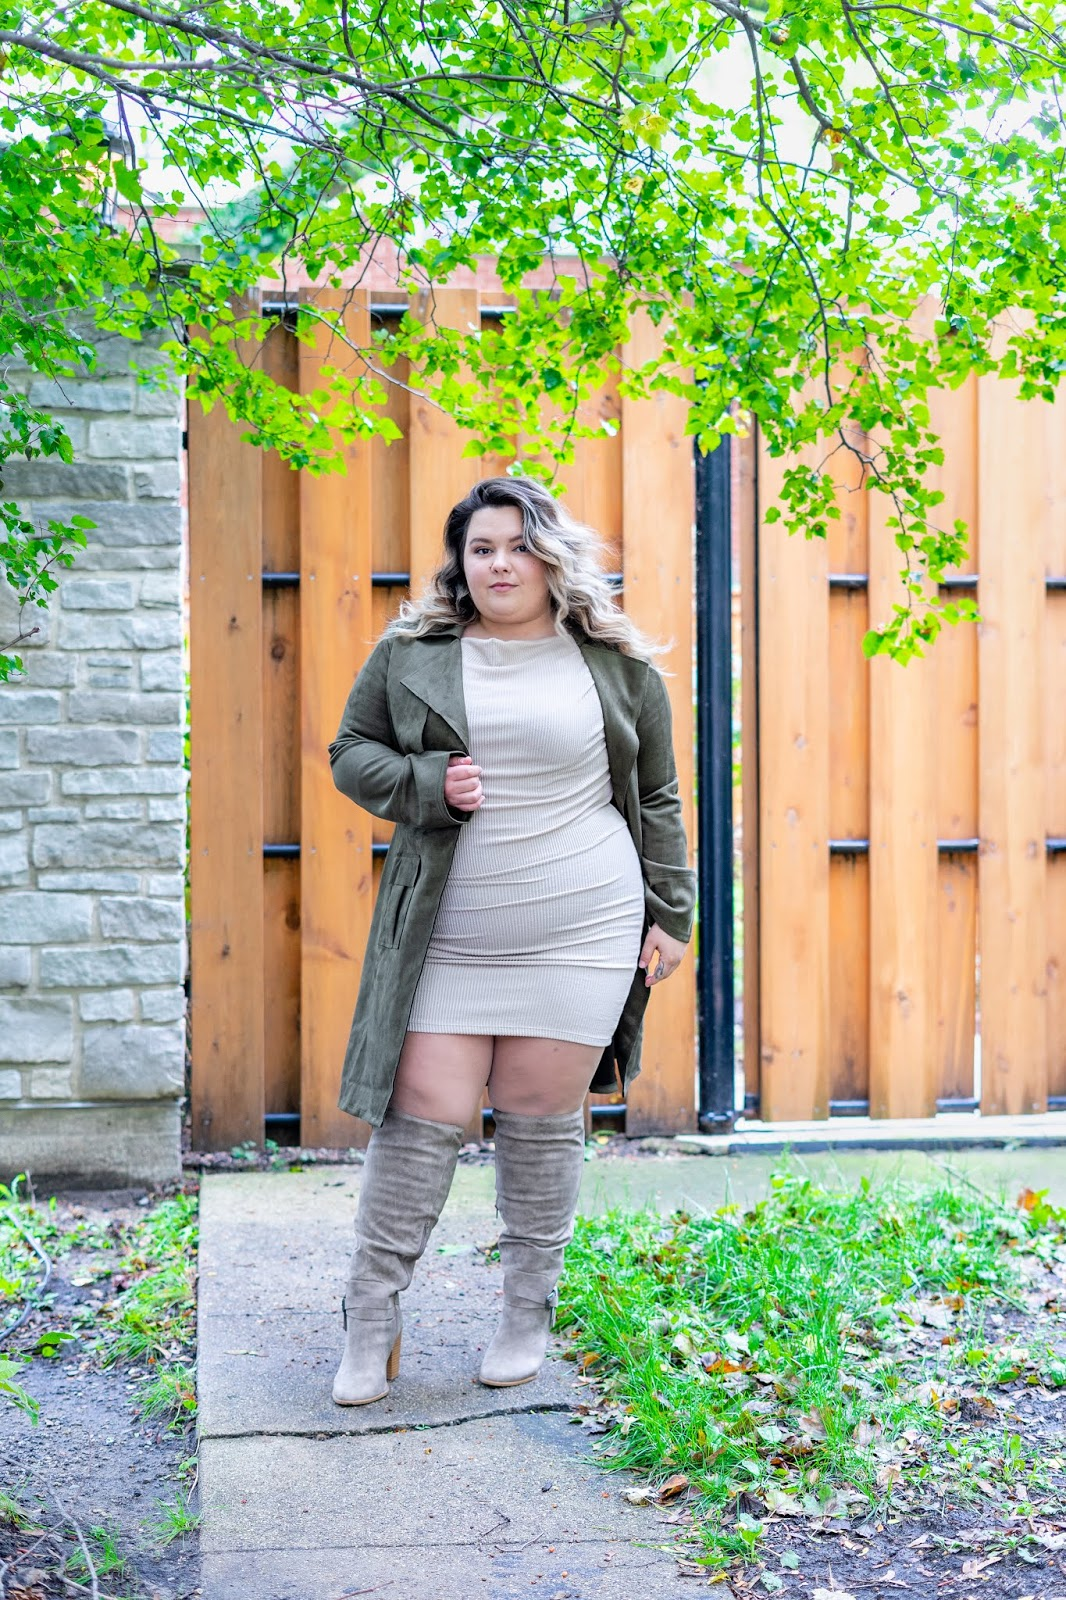 Chicago fashion blogger, Chicago plus size fashion blogger, natalie Craig, natalie in the city, plus size fashion, Chicago fashion, plus size fashion blogger, eff your beauty standards, fatshion, skorch magazine, Chicago model, plus size model, plus size petite, affordable plus size clothing, embrace your curves, plus model magazine,  petite plus size, body positive, fashion nova curve, fashion nova, plus size suede jacket, long sleeve plus size dress, wide calf boots, wide width boots